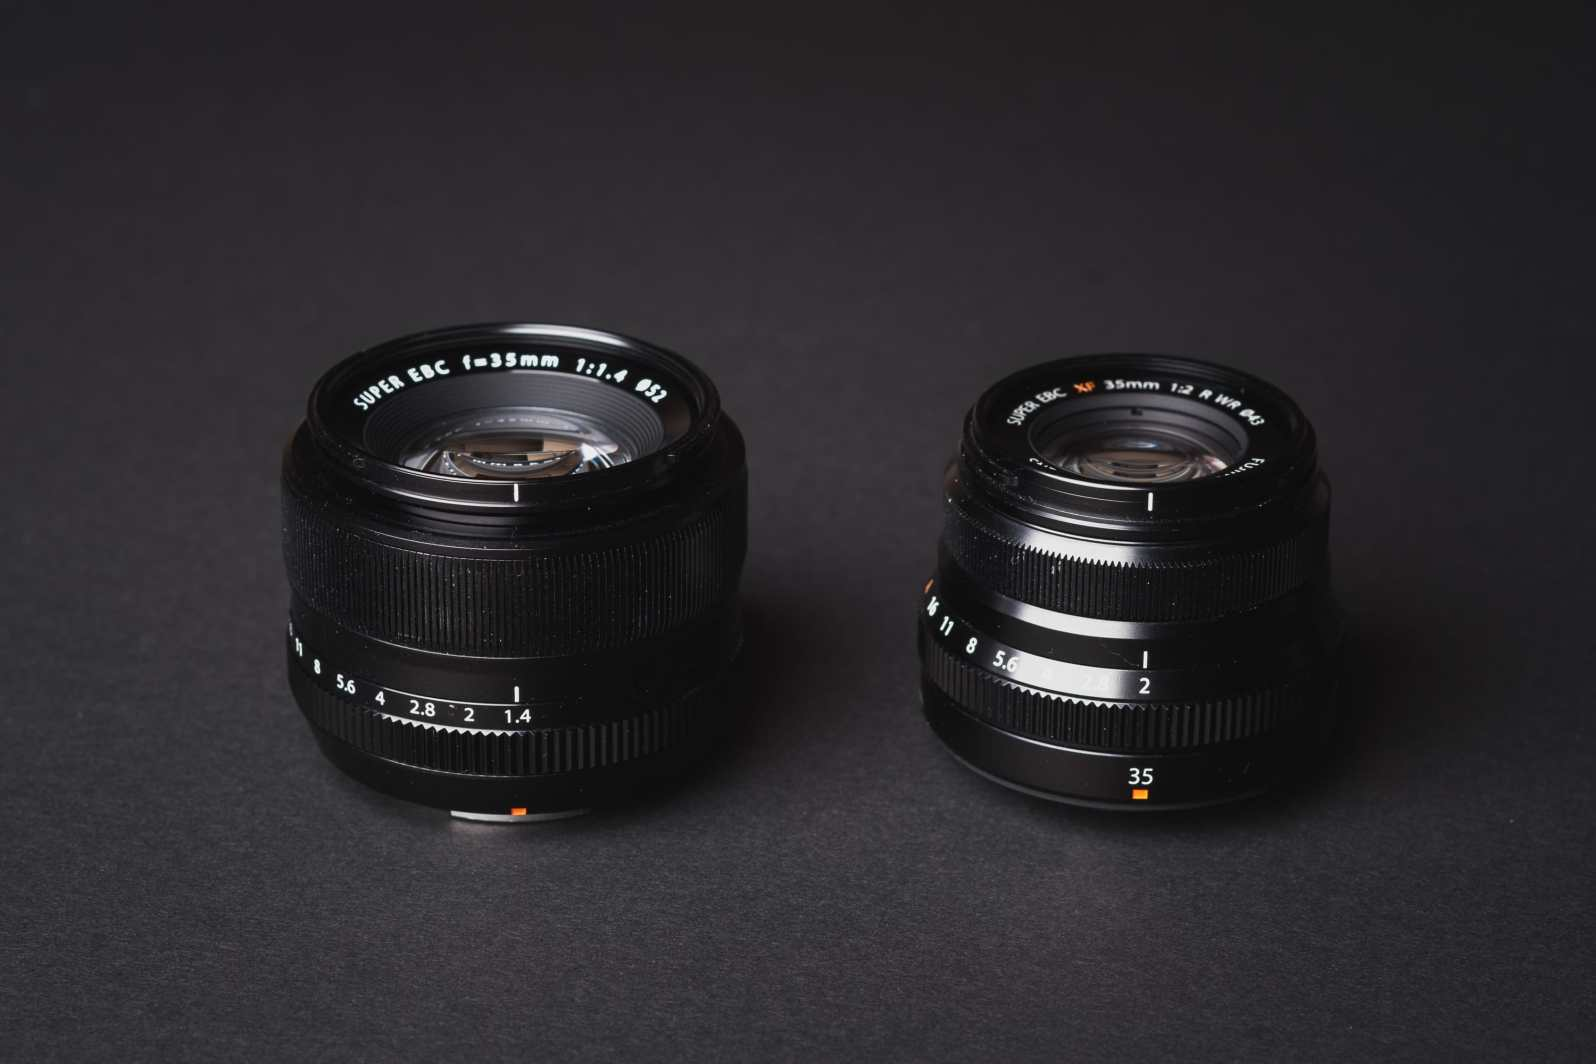 Fujinon 35mm f1.4 vs 35mm f2